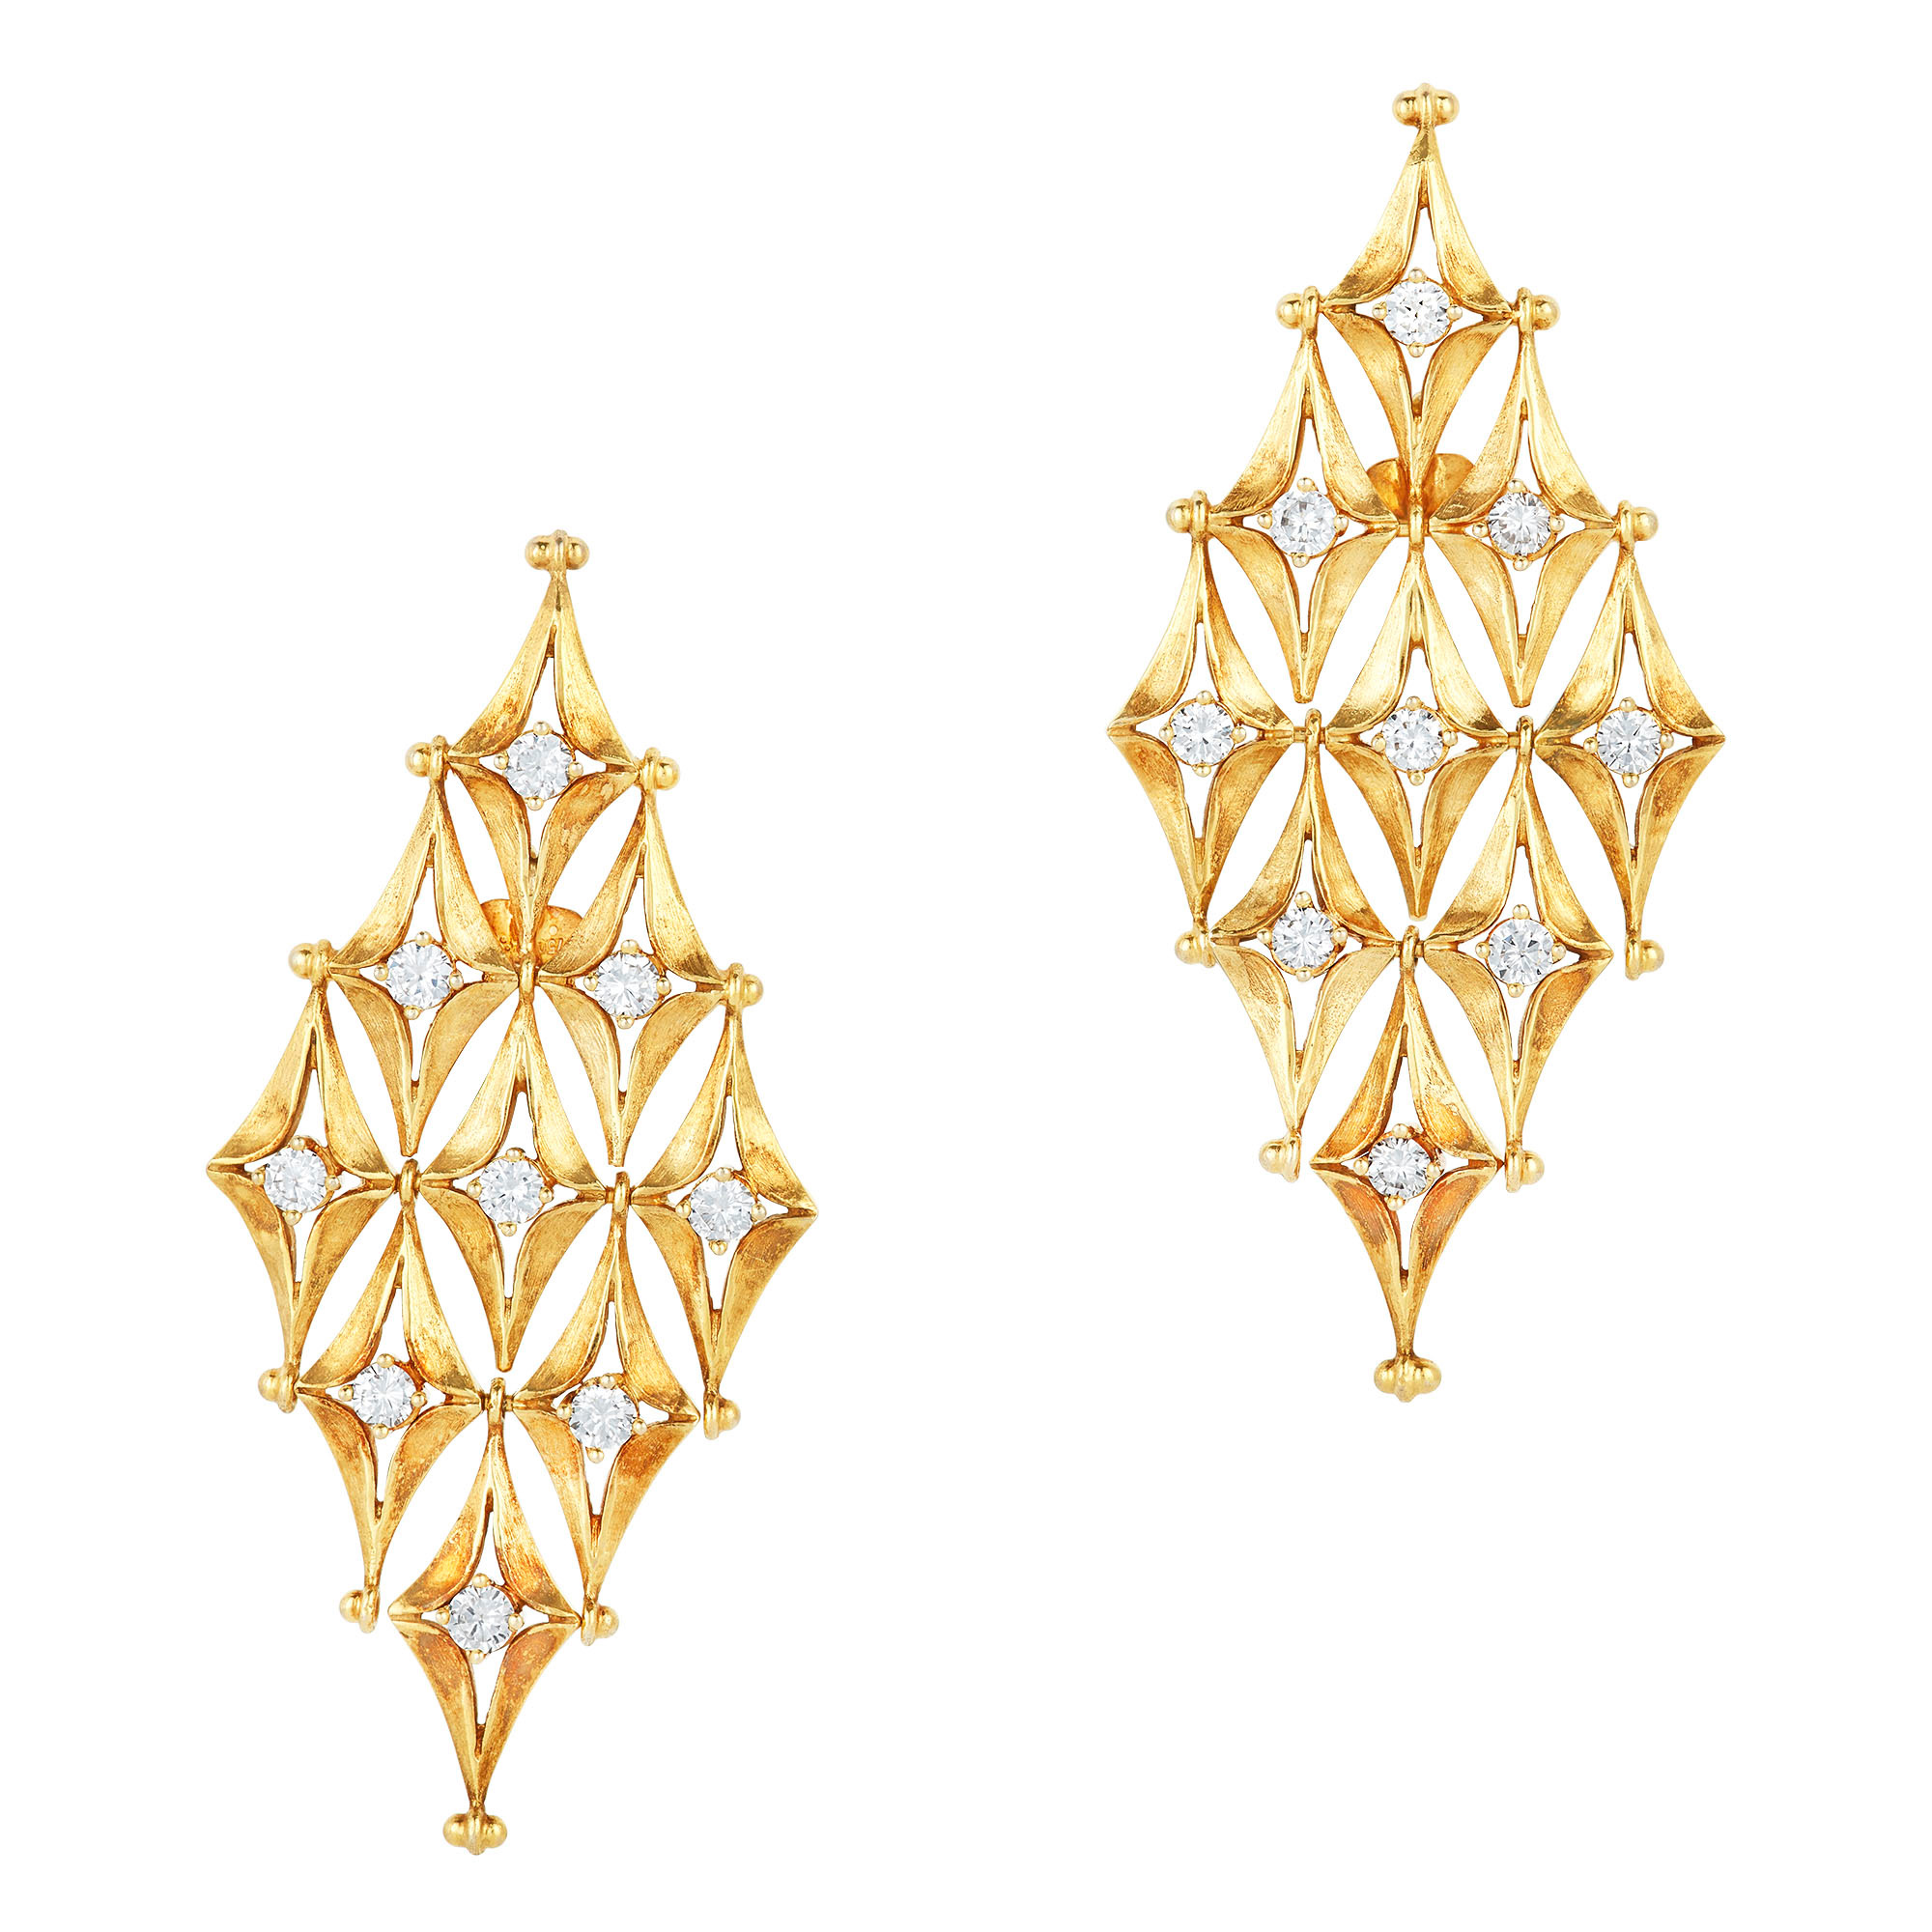 Lot image - Pair of Gold and Diamond Pendant-Earrings